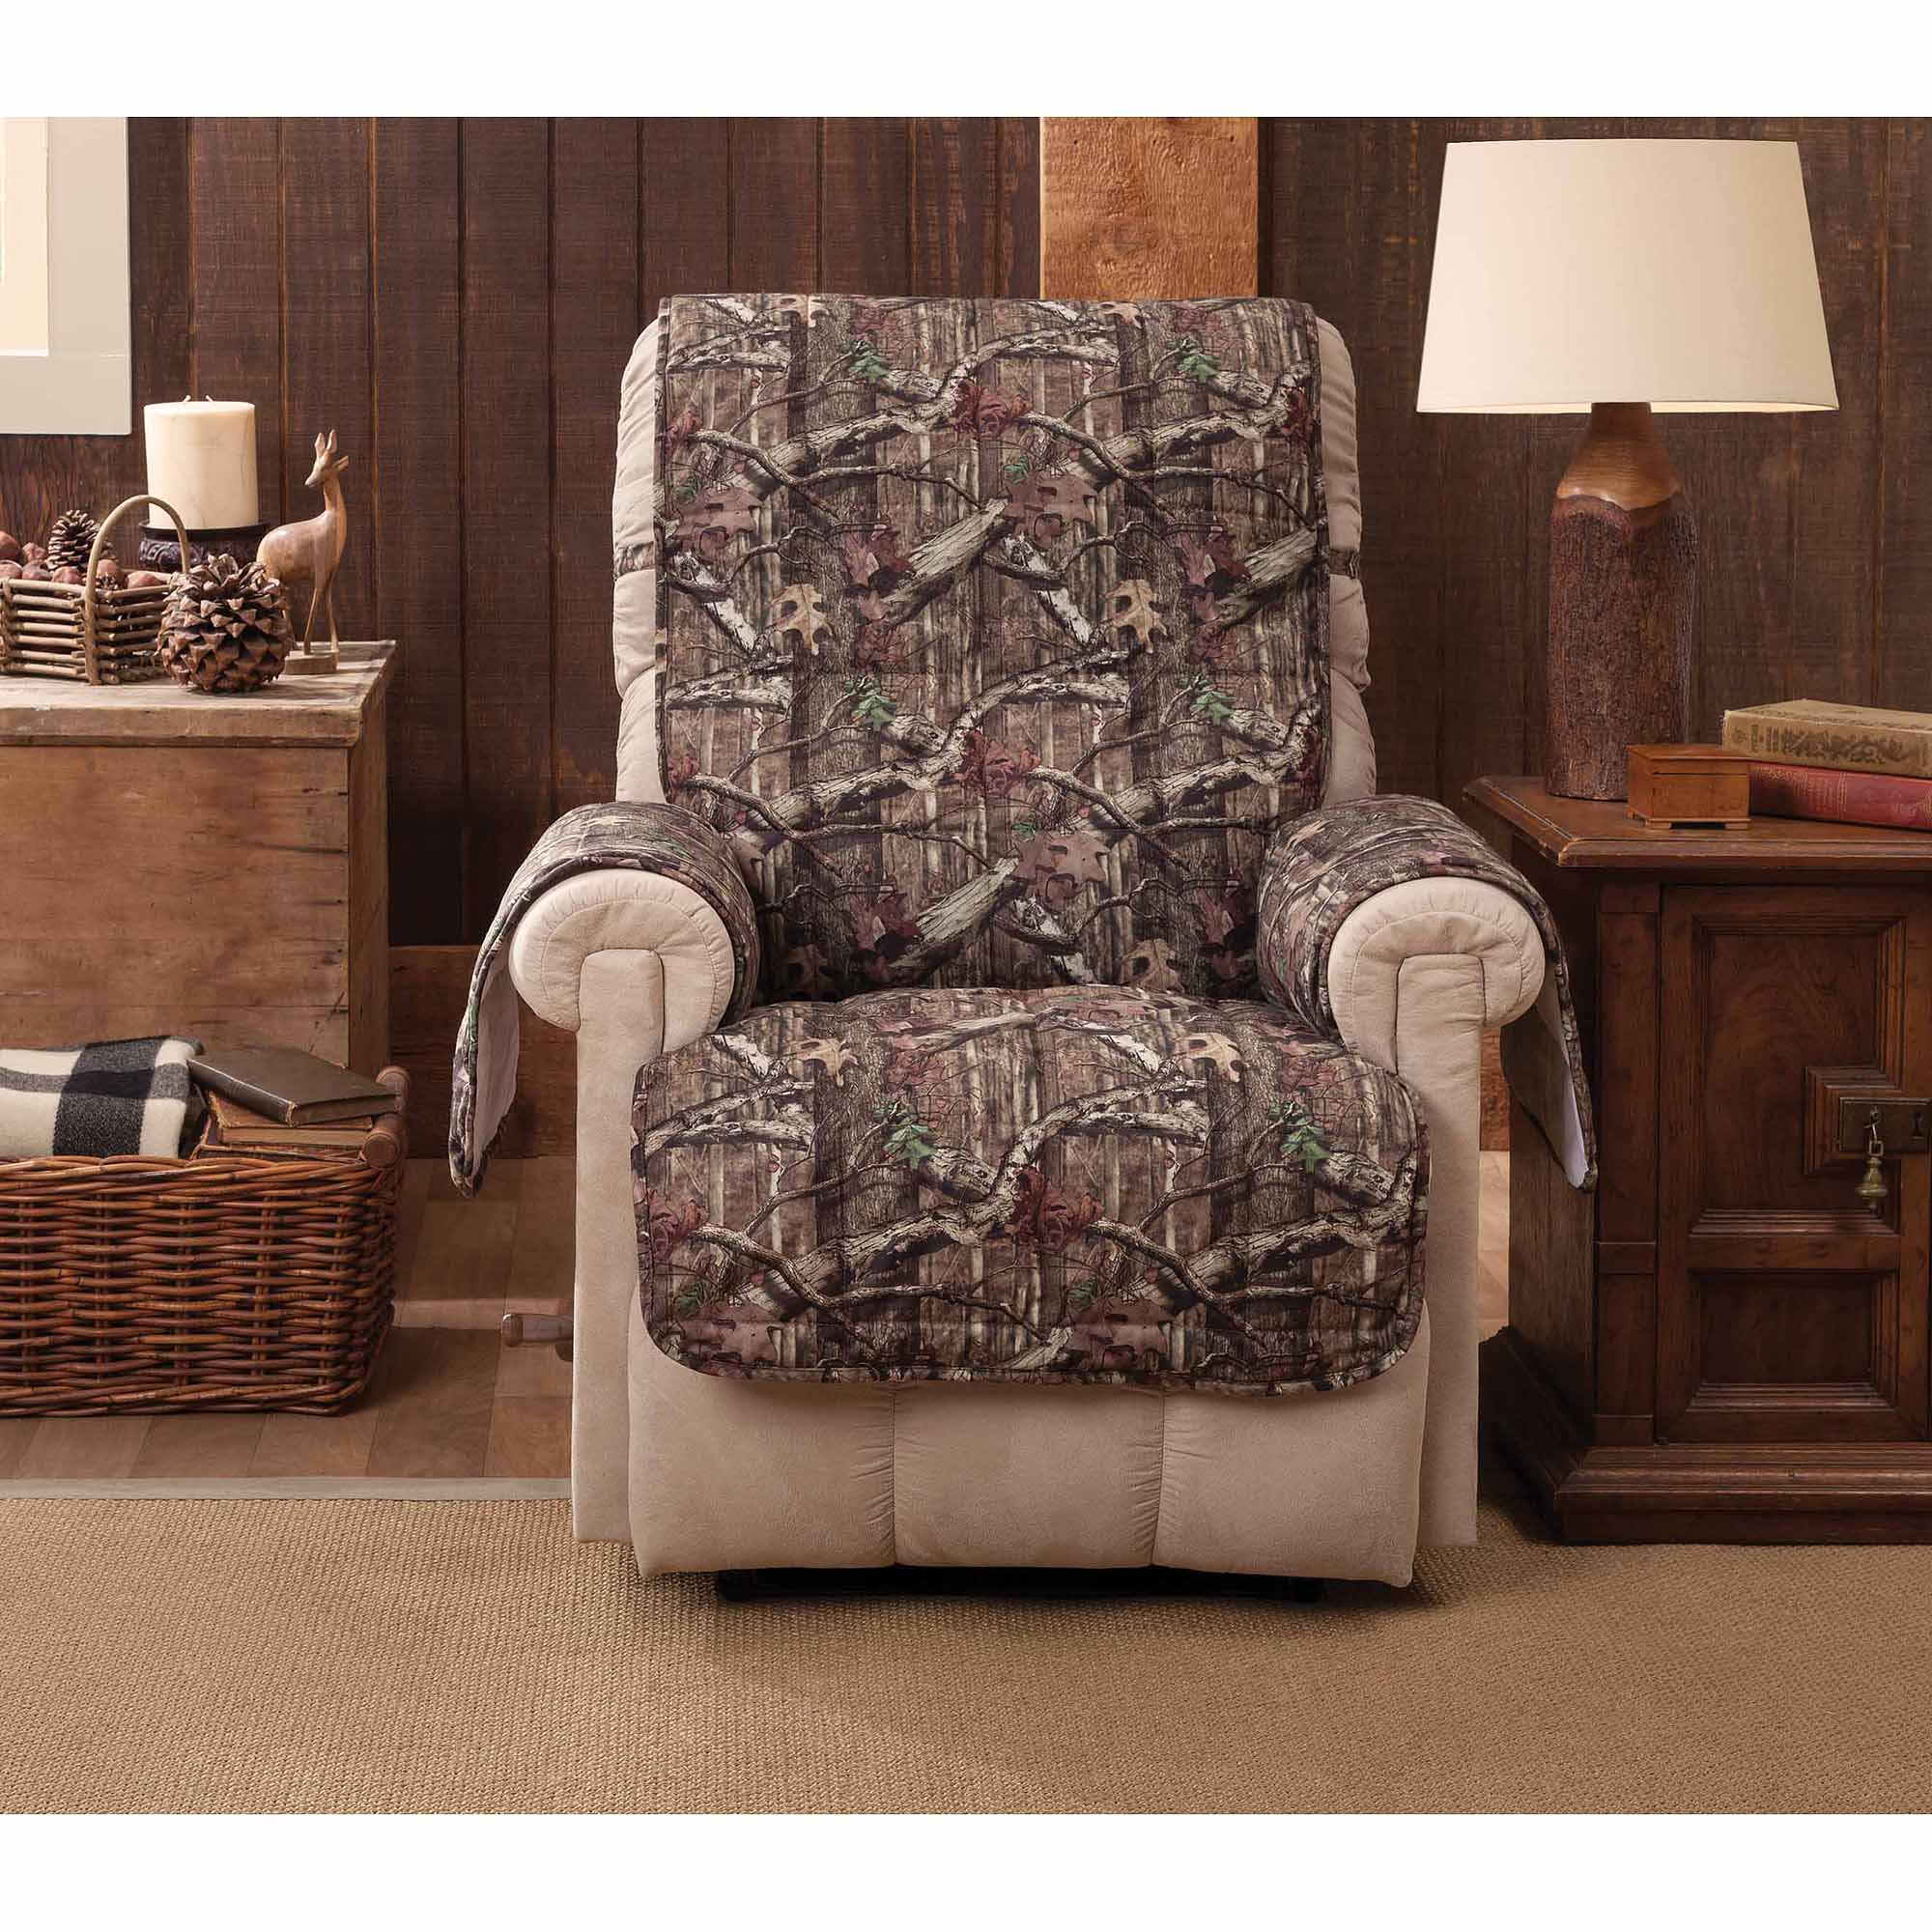 Mossy Oak Break Up Infinity Camouflage Recliner/Winu2026